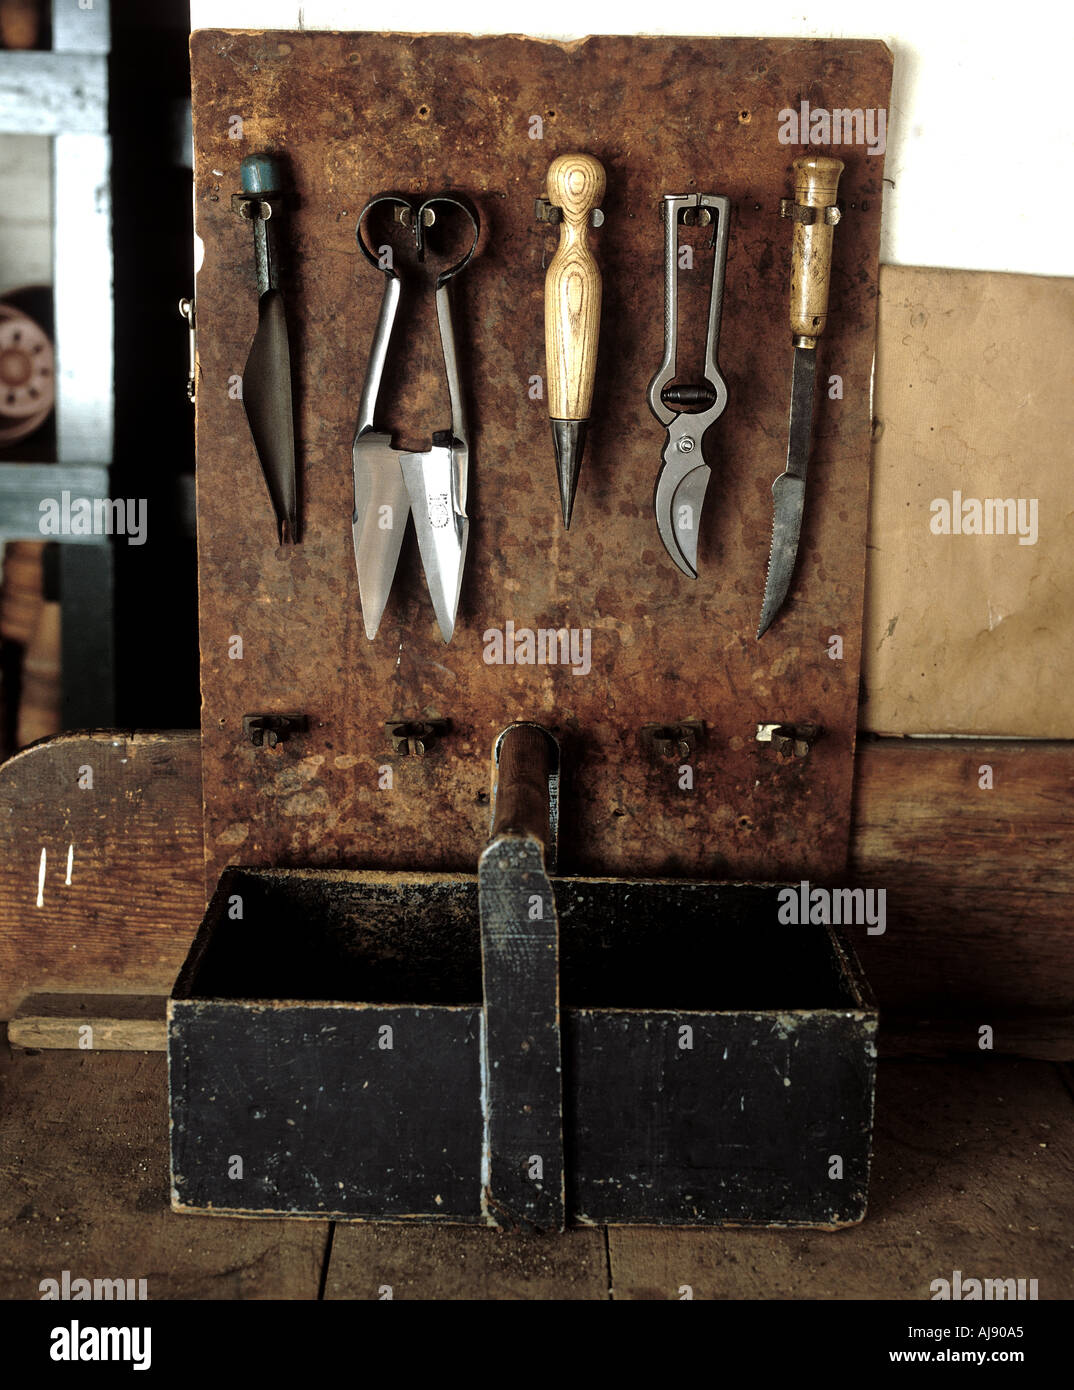 Gardners tools diaplayed in a gardeners shed insinuating hard work ni all the weather times of year - Stock Image